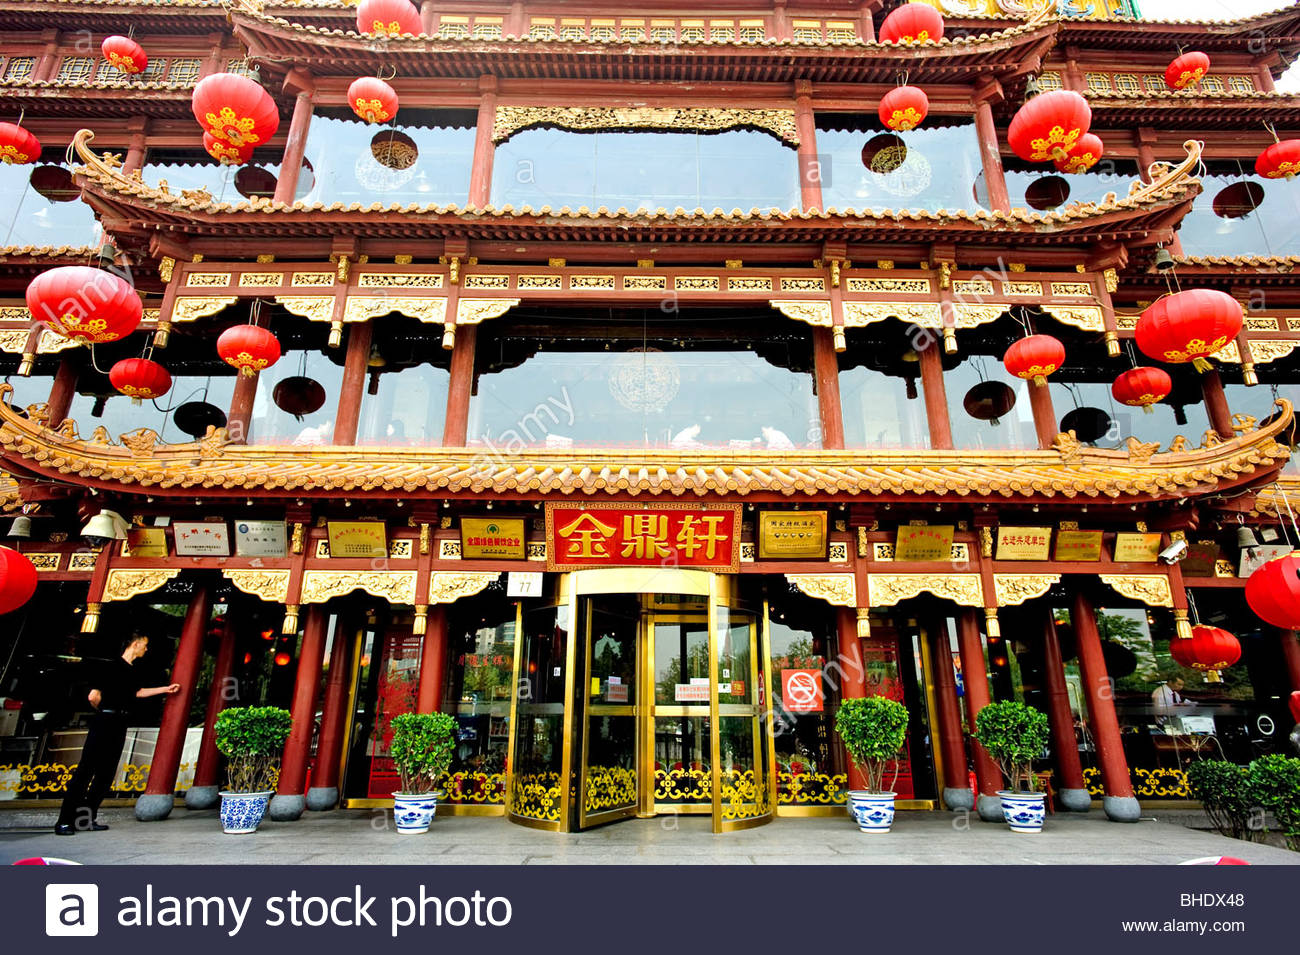 The famous 'dim sum' restaurant Jin Ding Xuan is opened 24 hours. Beijing, china - Stock Image